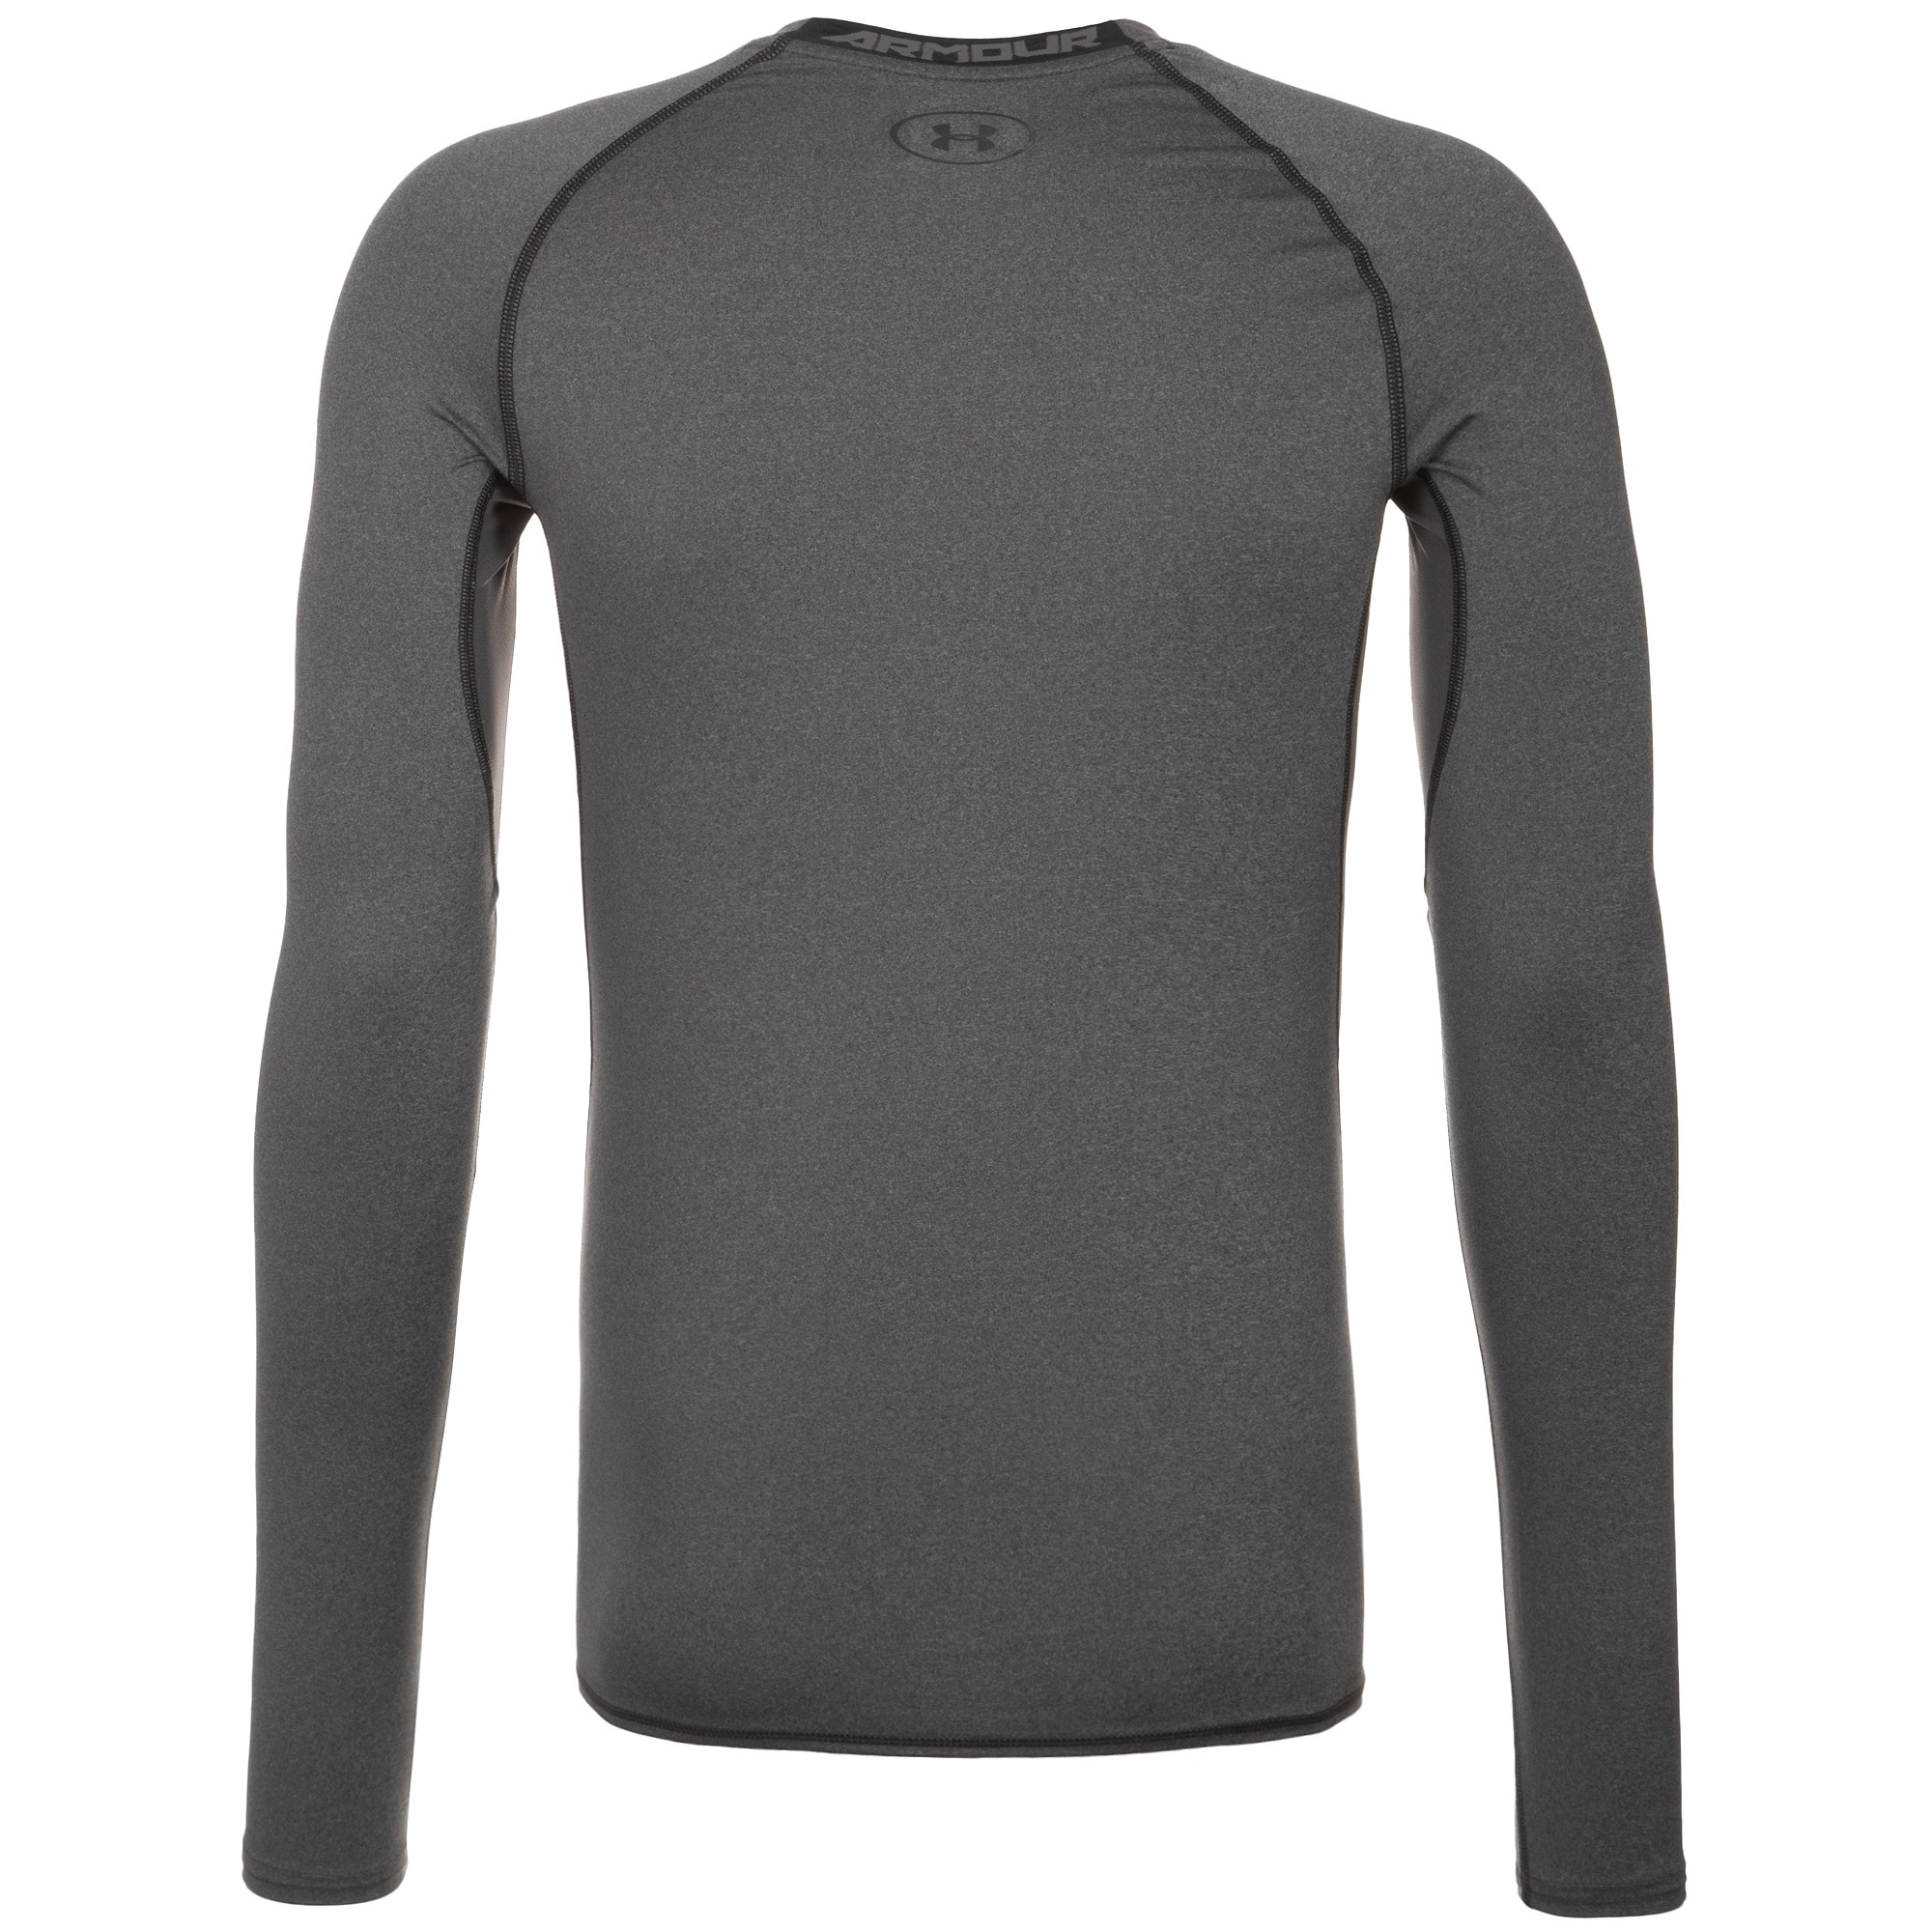 UNDER ARMOUR, Heren Functioneel shirt 'HeatGear Compression', grijs